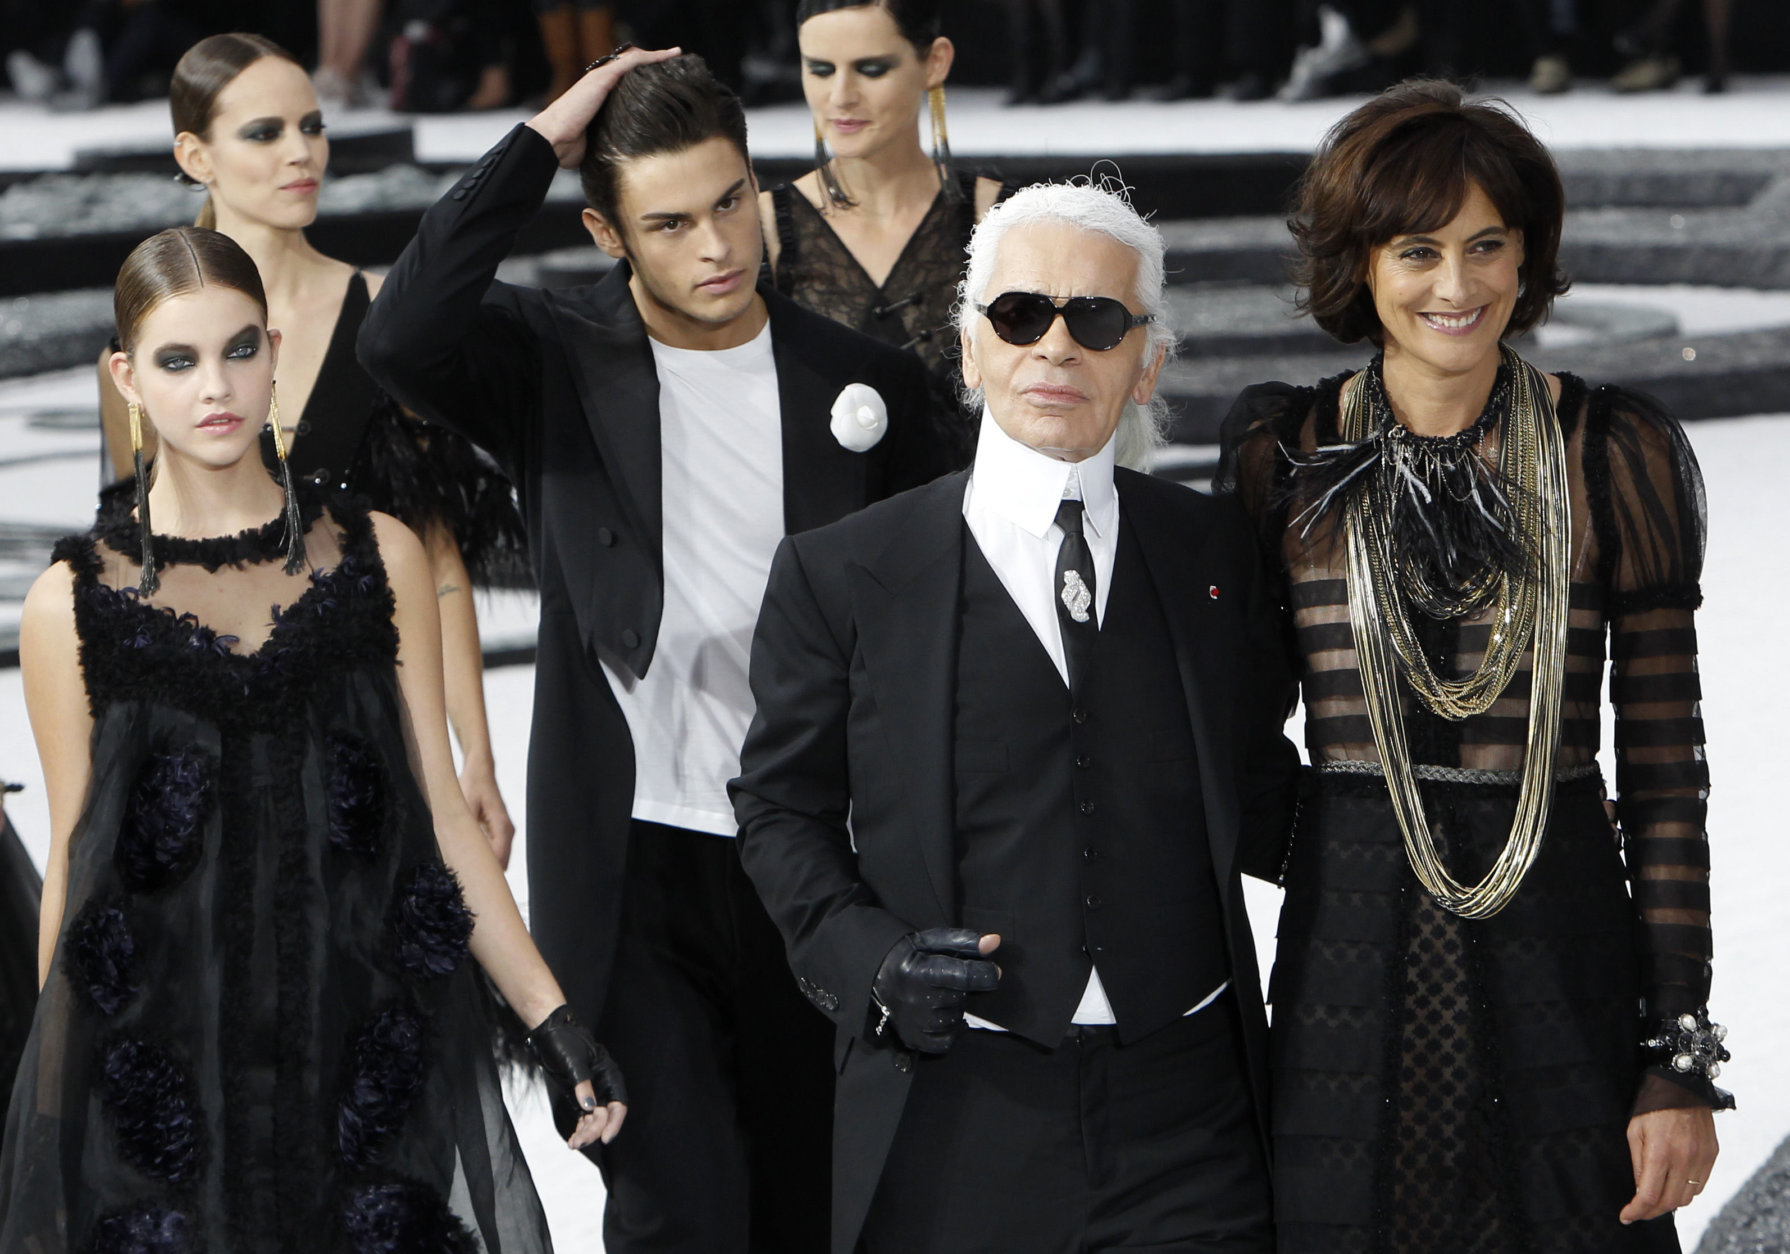 German fashion designer Karl Lagerfeld, 2nd from right, and French former model and now designer Ines de la Fressange, right, flanked with models, take the catwalk, at the Grand Palais museum, at the end of Lagerfeld's spring-summer 2011 ready to wear collection for Chanel, presented in Paris, Tuesday, Oct. 5, 2010. (AP Photo/Christophe Ena)